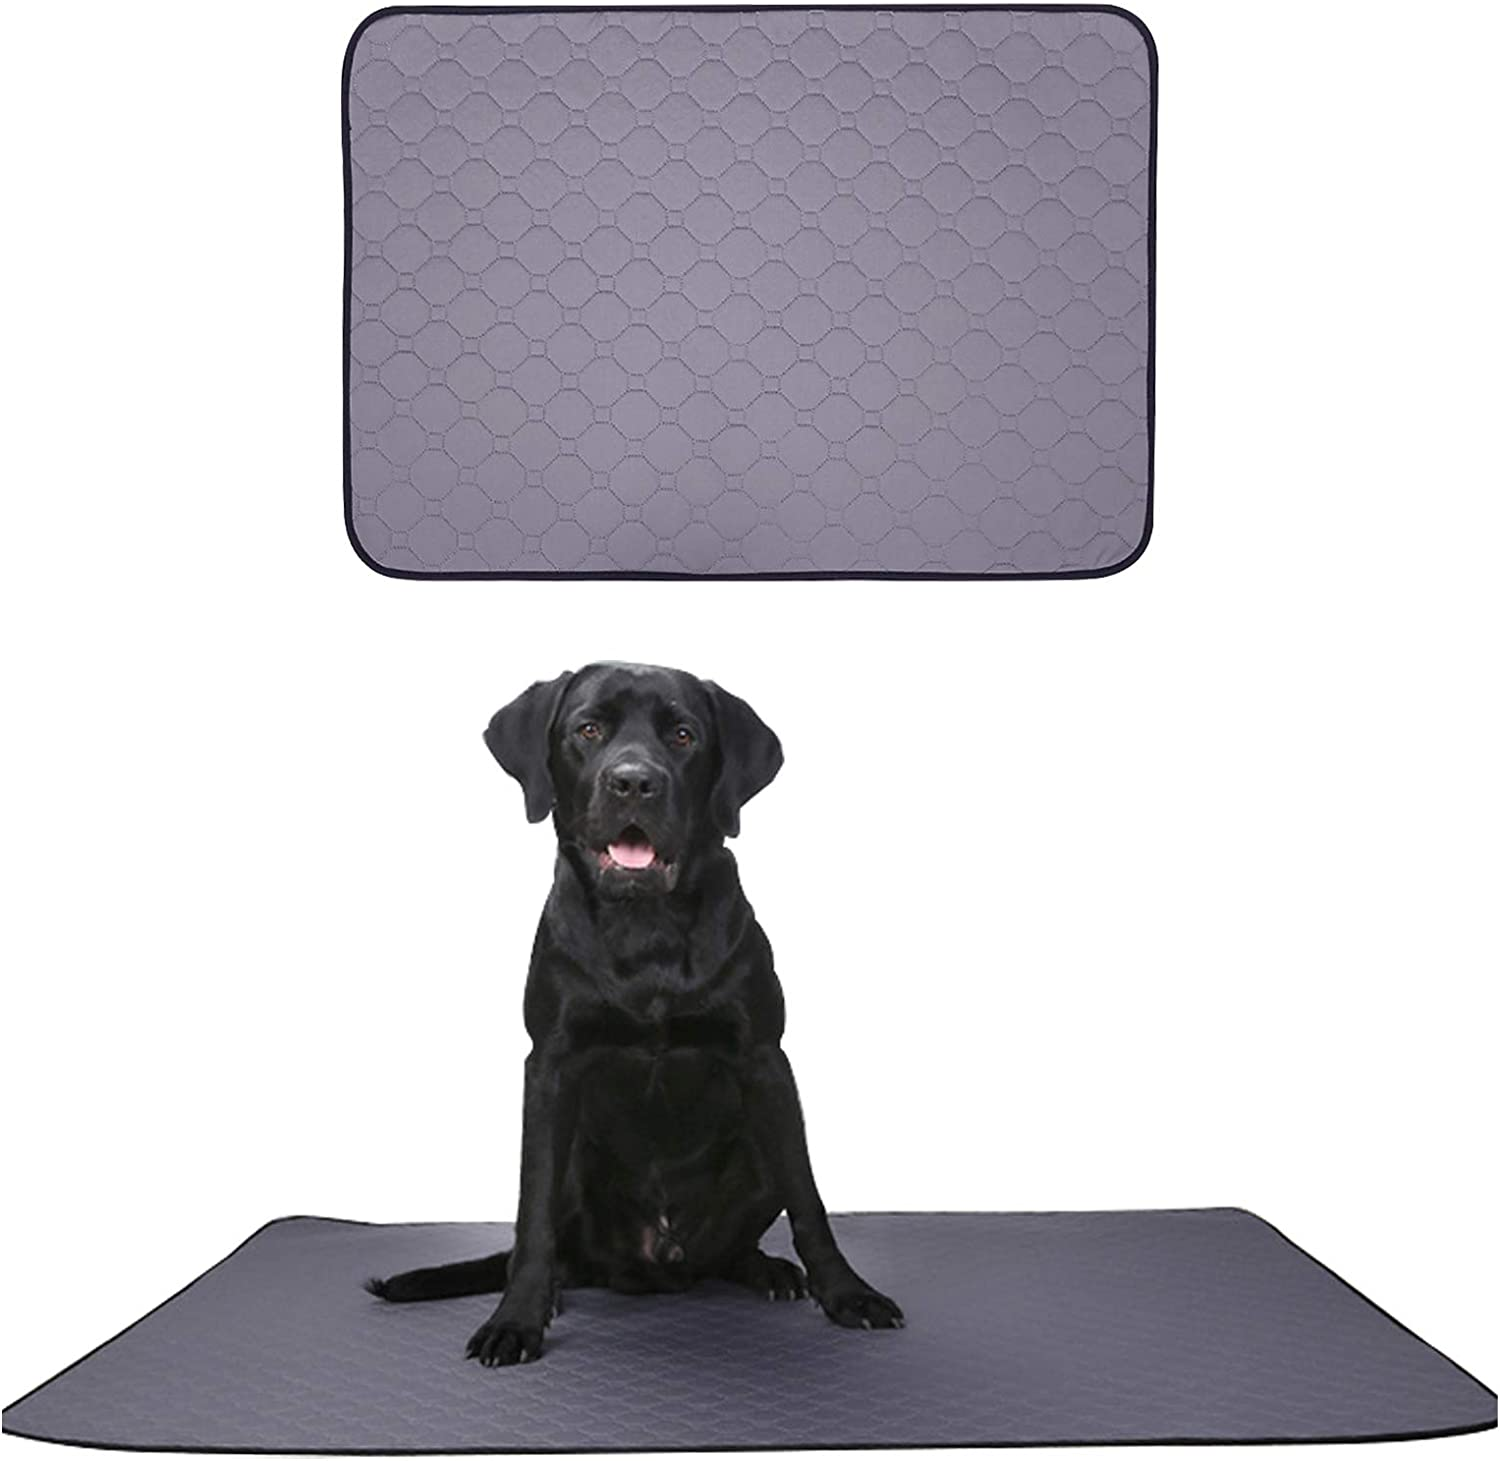 HACRAHO Dog Pee Pad 1 Grey Puppy Reusable Piece Manufacturer regenerated National products product Non-Sli